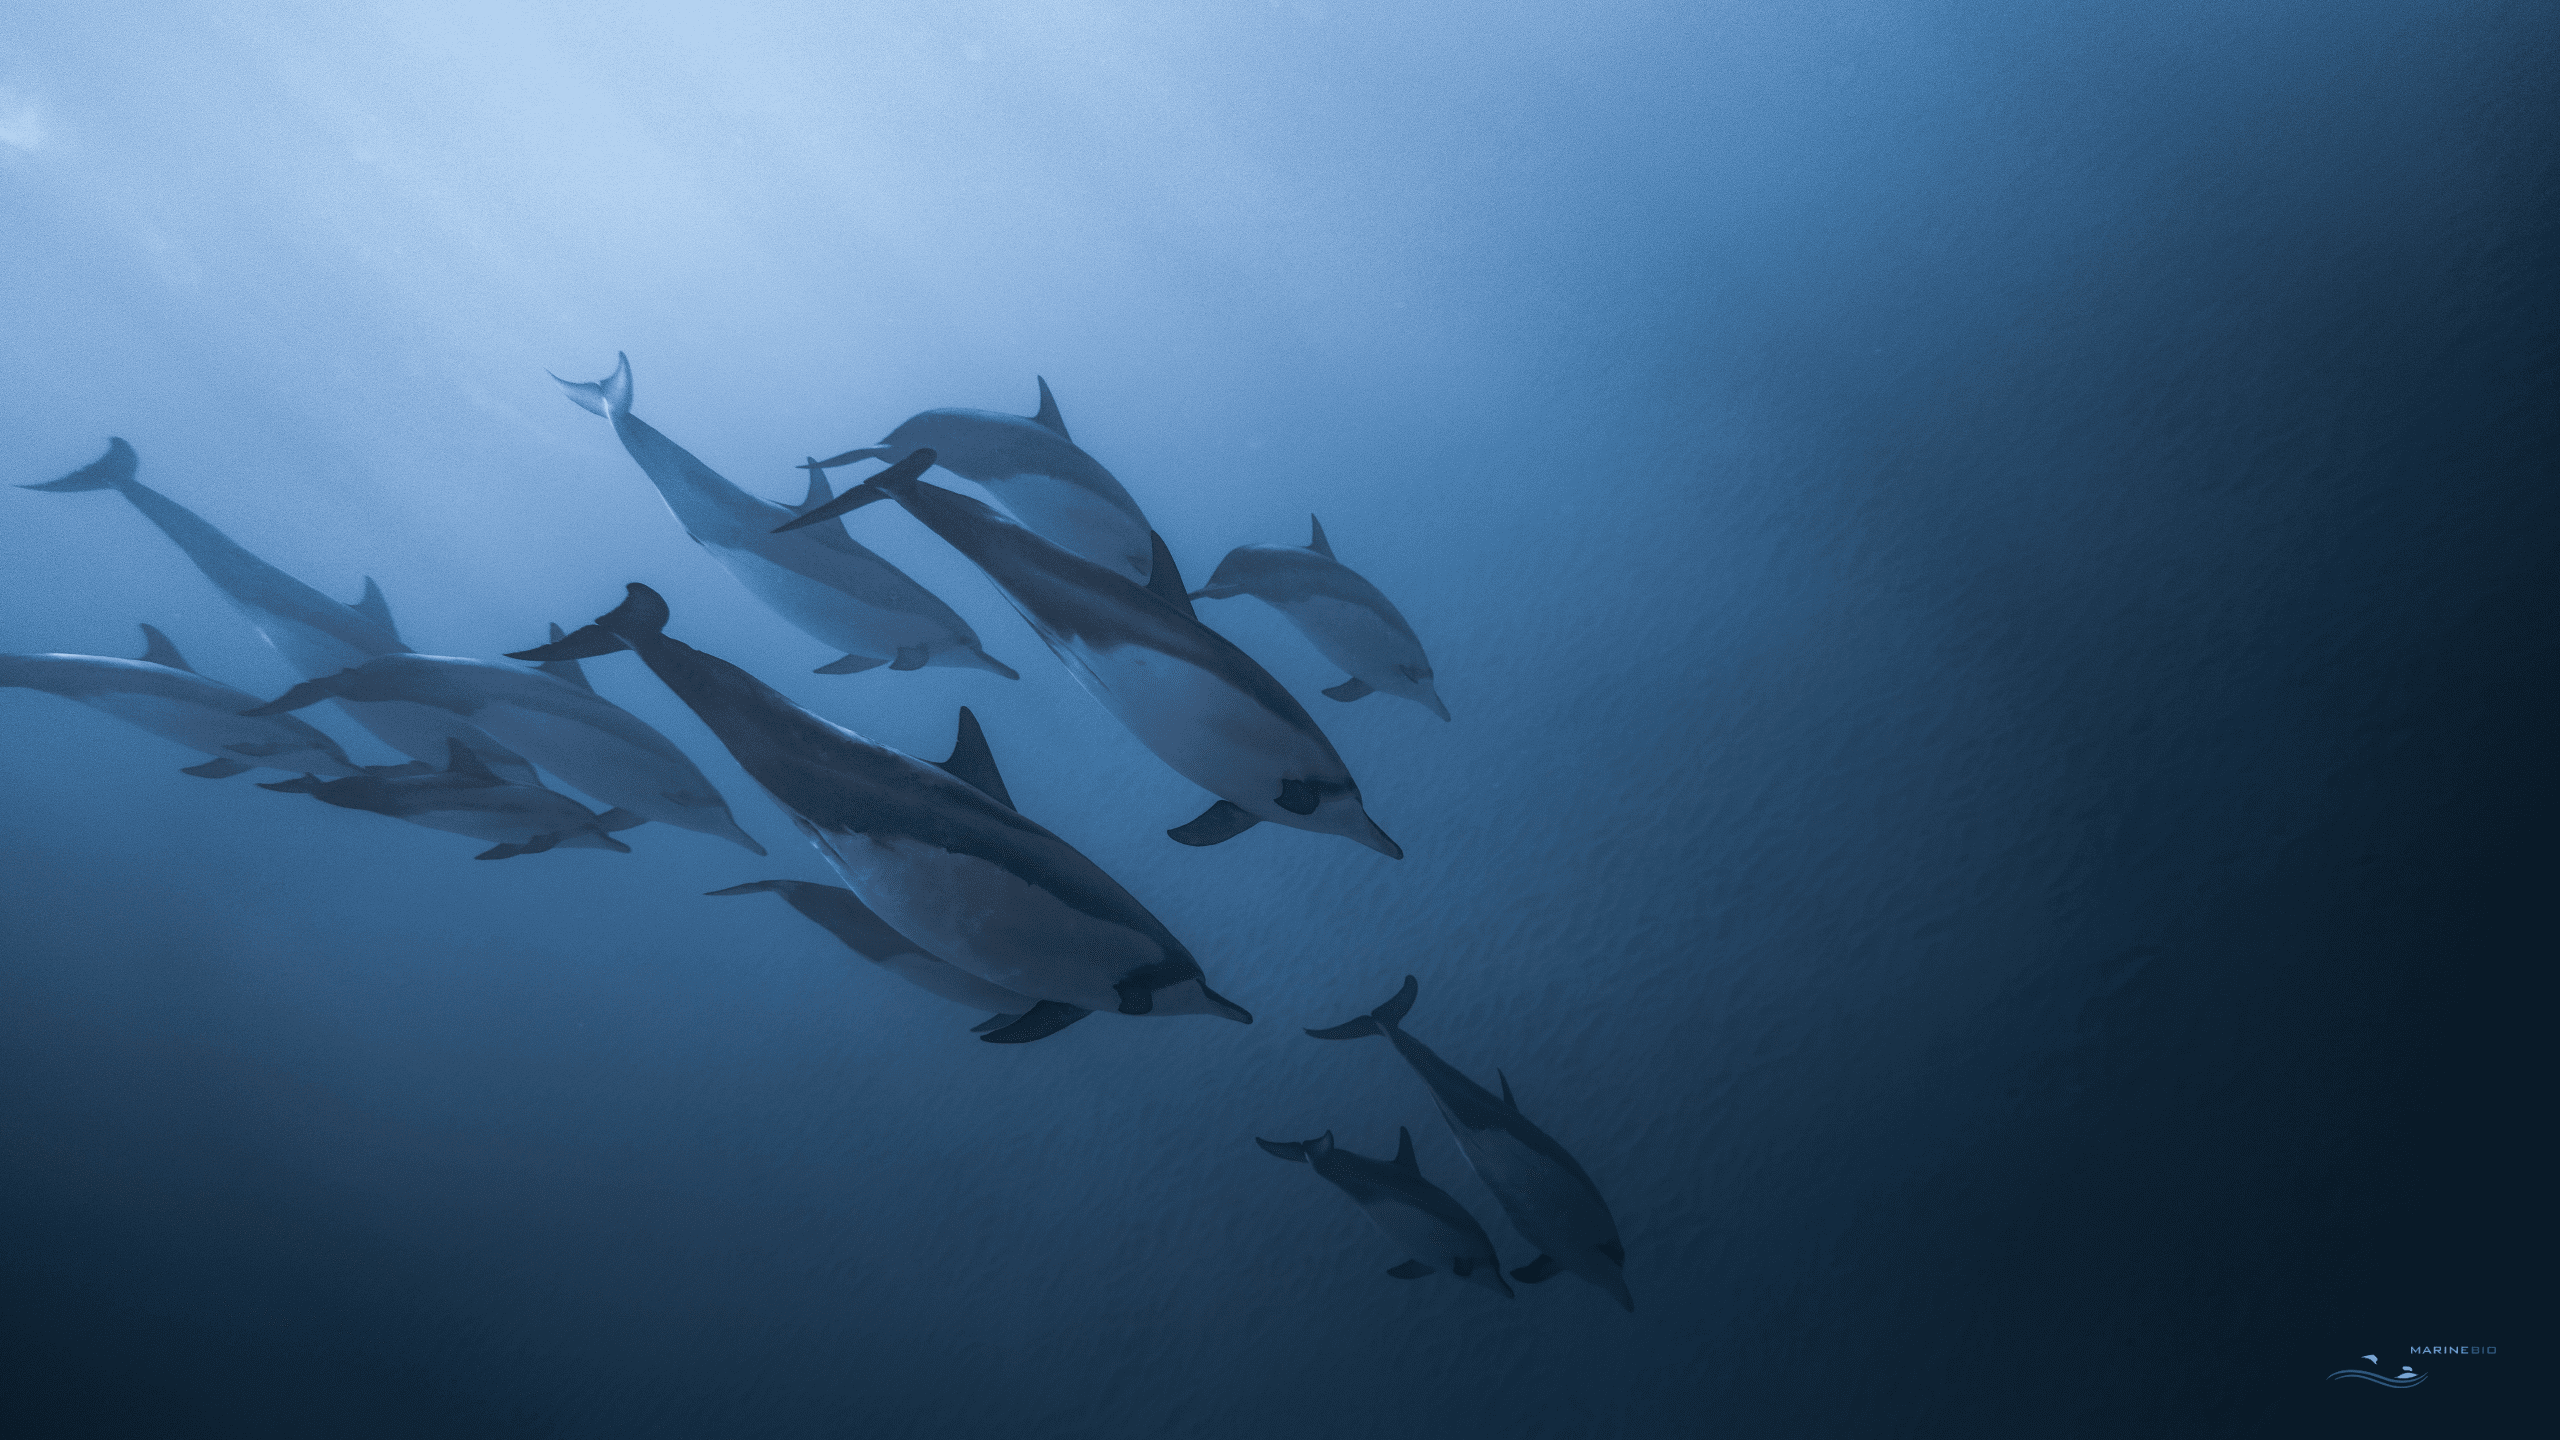 MB-dolphins-wallpaper6